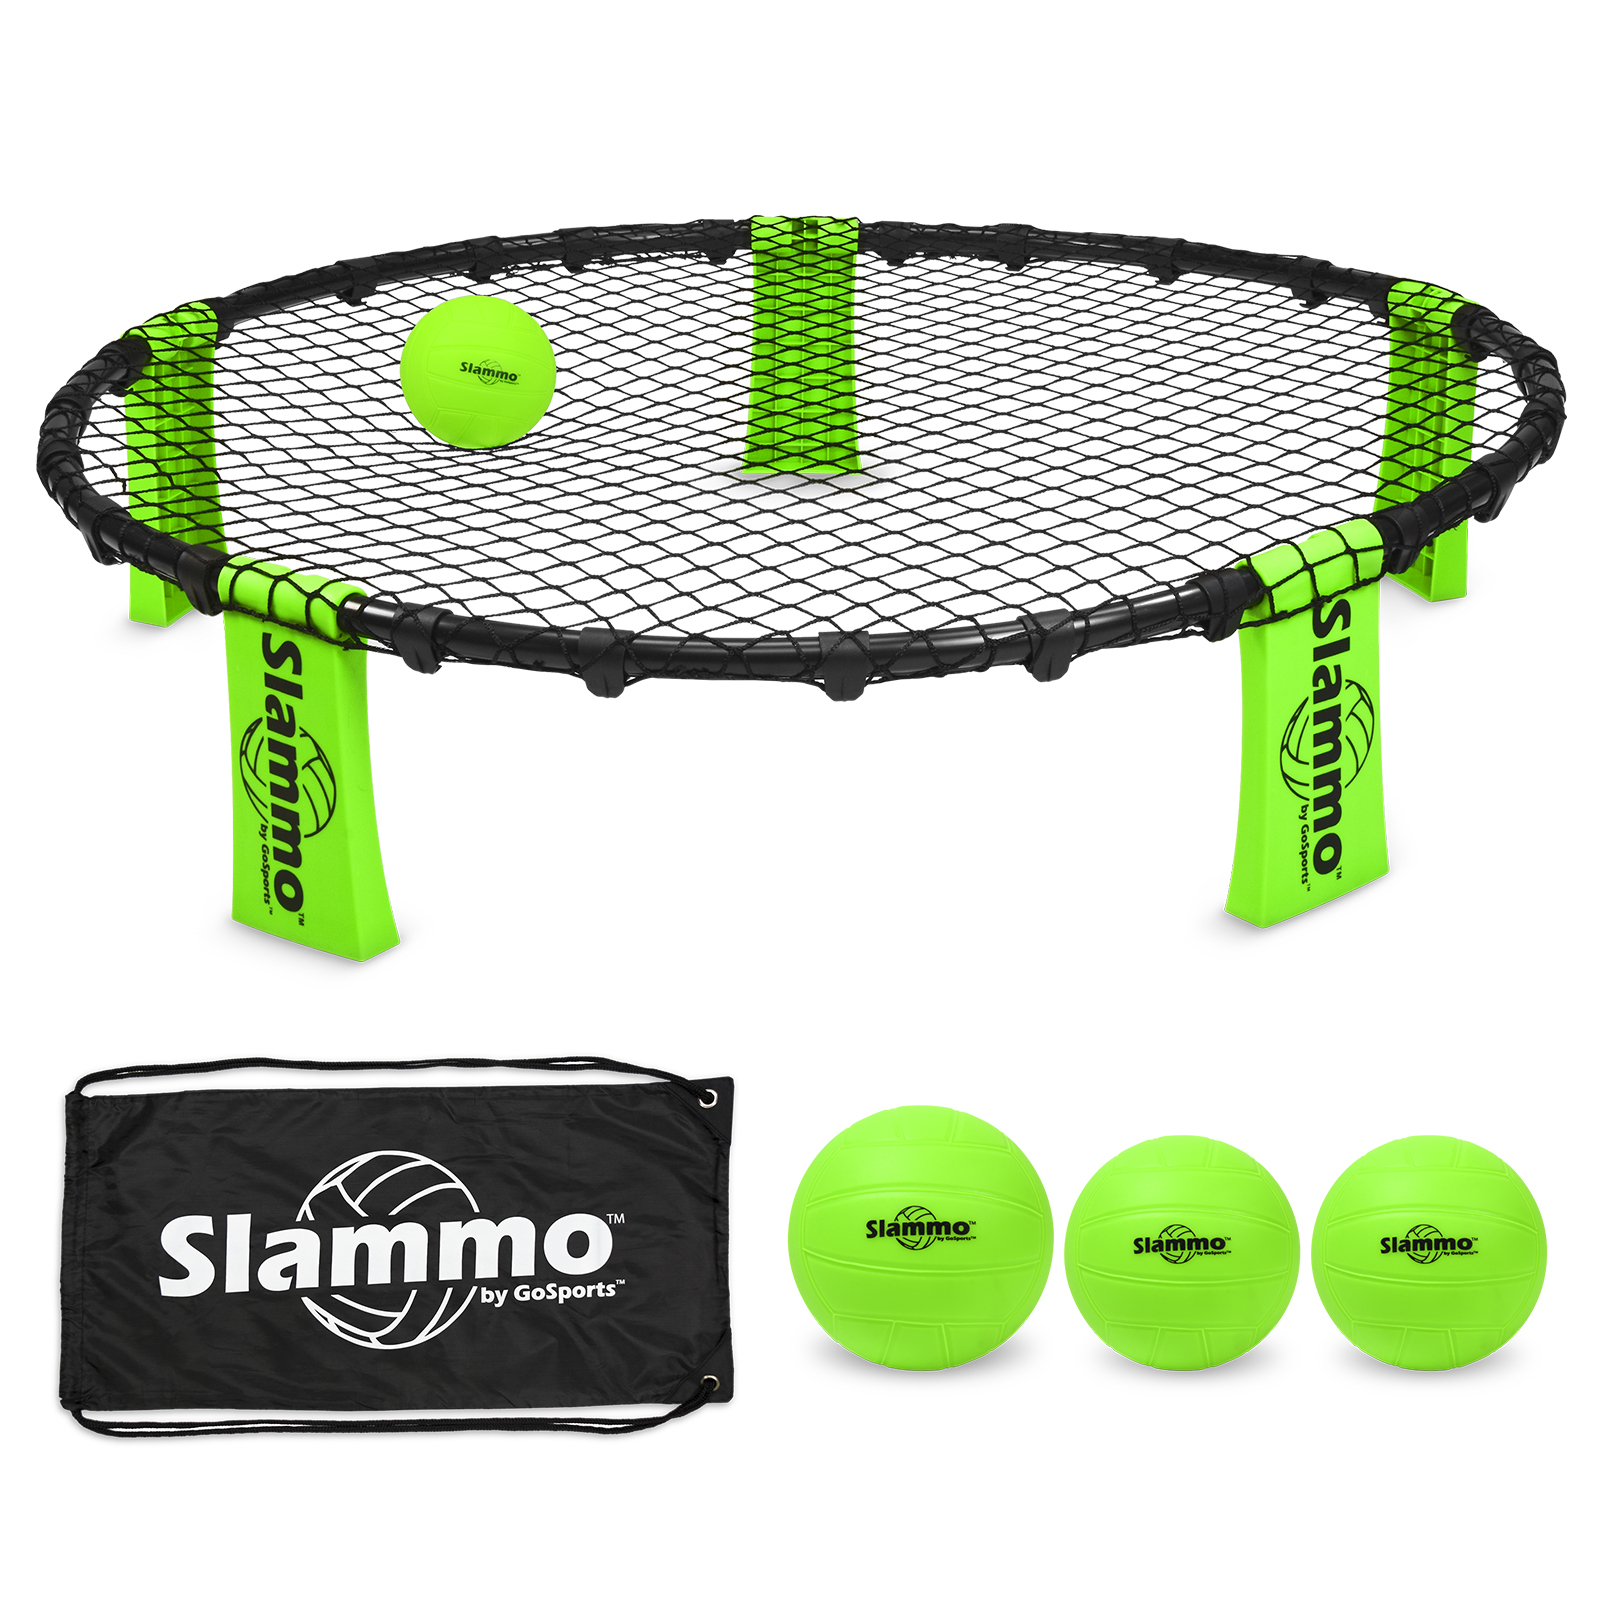 GoSports Slammo Game Set, Includes 3 Balls, Carrying Case and Slammo Rules